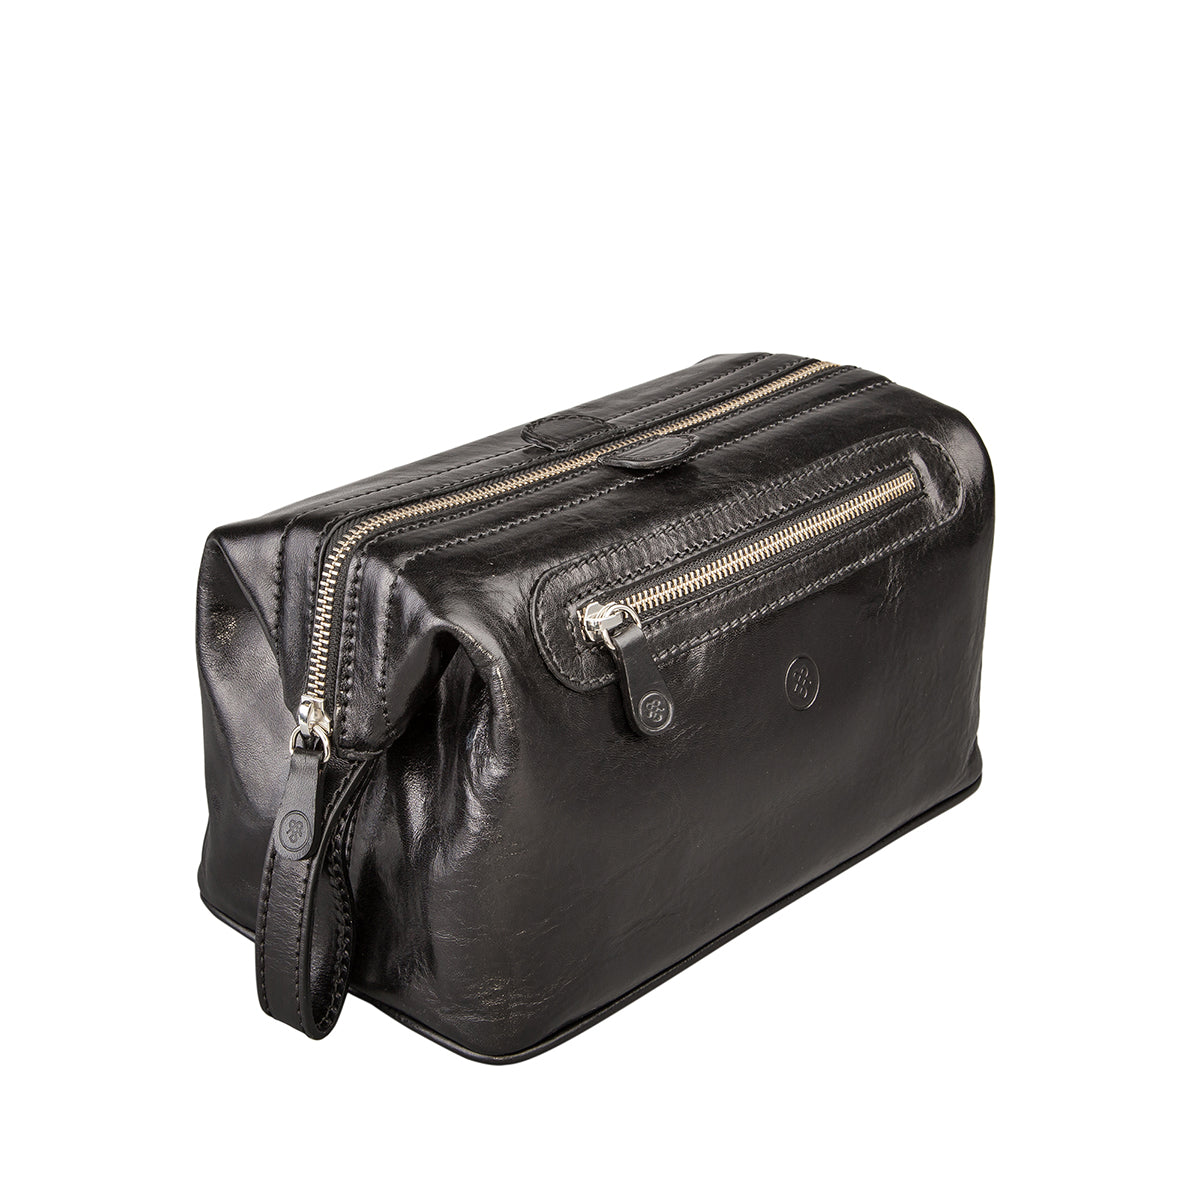 Image 2 of the 'Duno L'  Black Veg-Tanned Leather Wash Bag